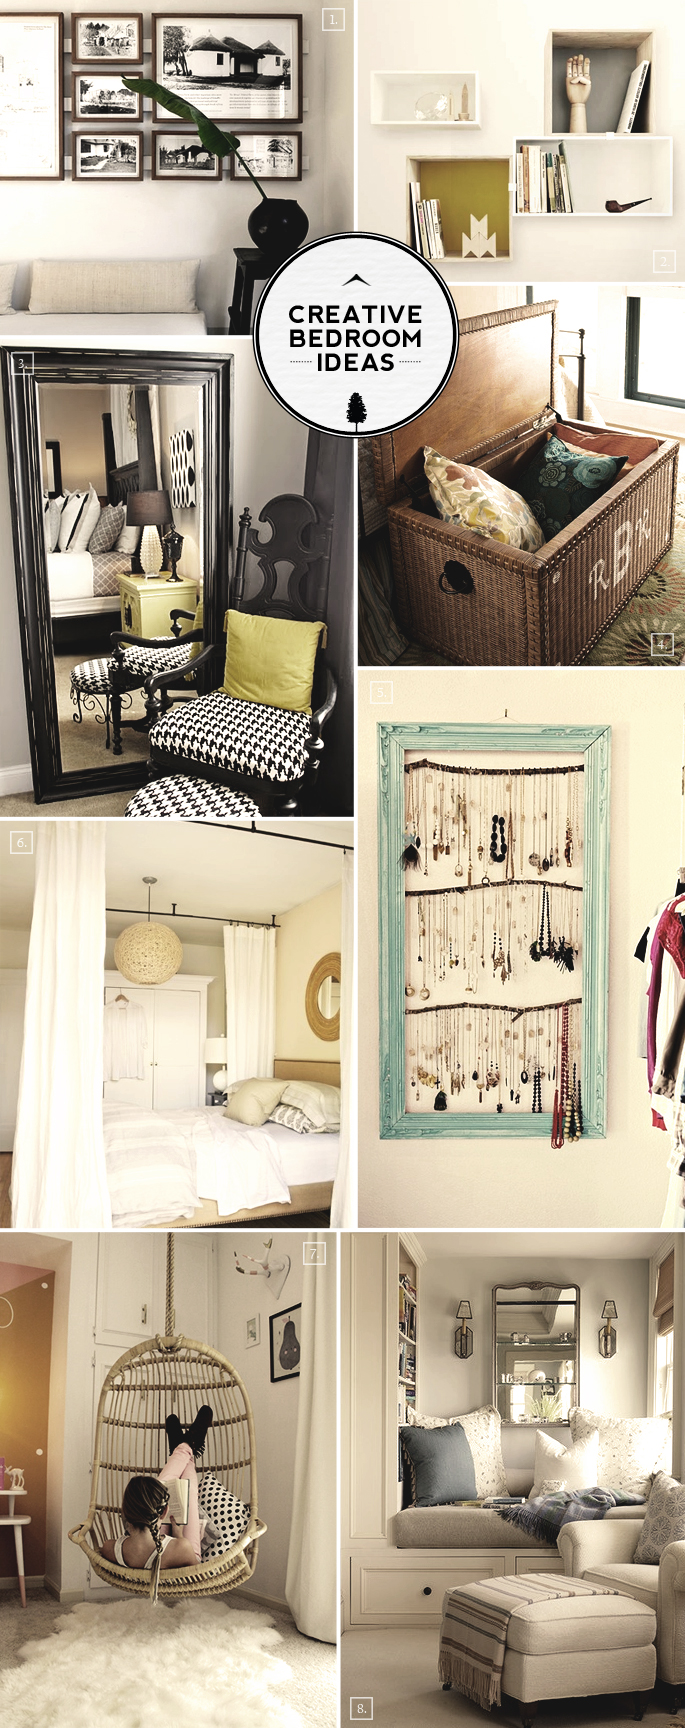 Creative Ideas For Salon And Spa Businesses: Creative Bedroom Ideas: From Reading Nooks To Hanging